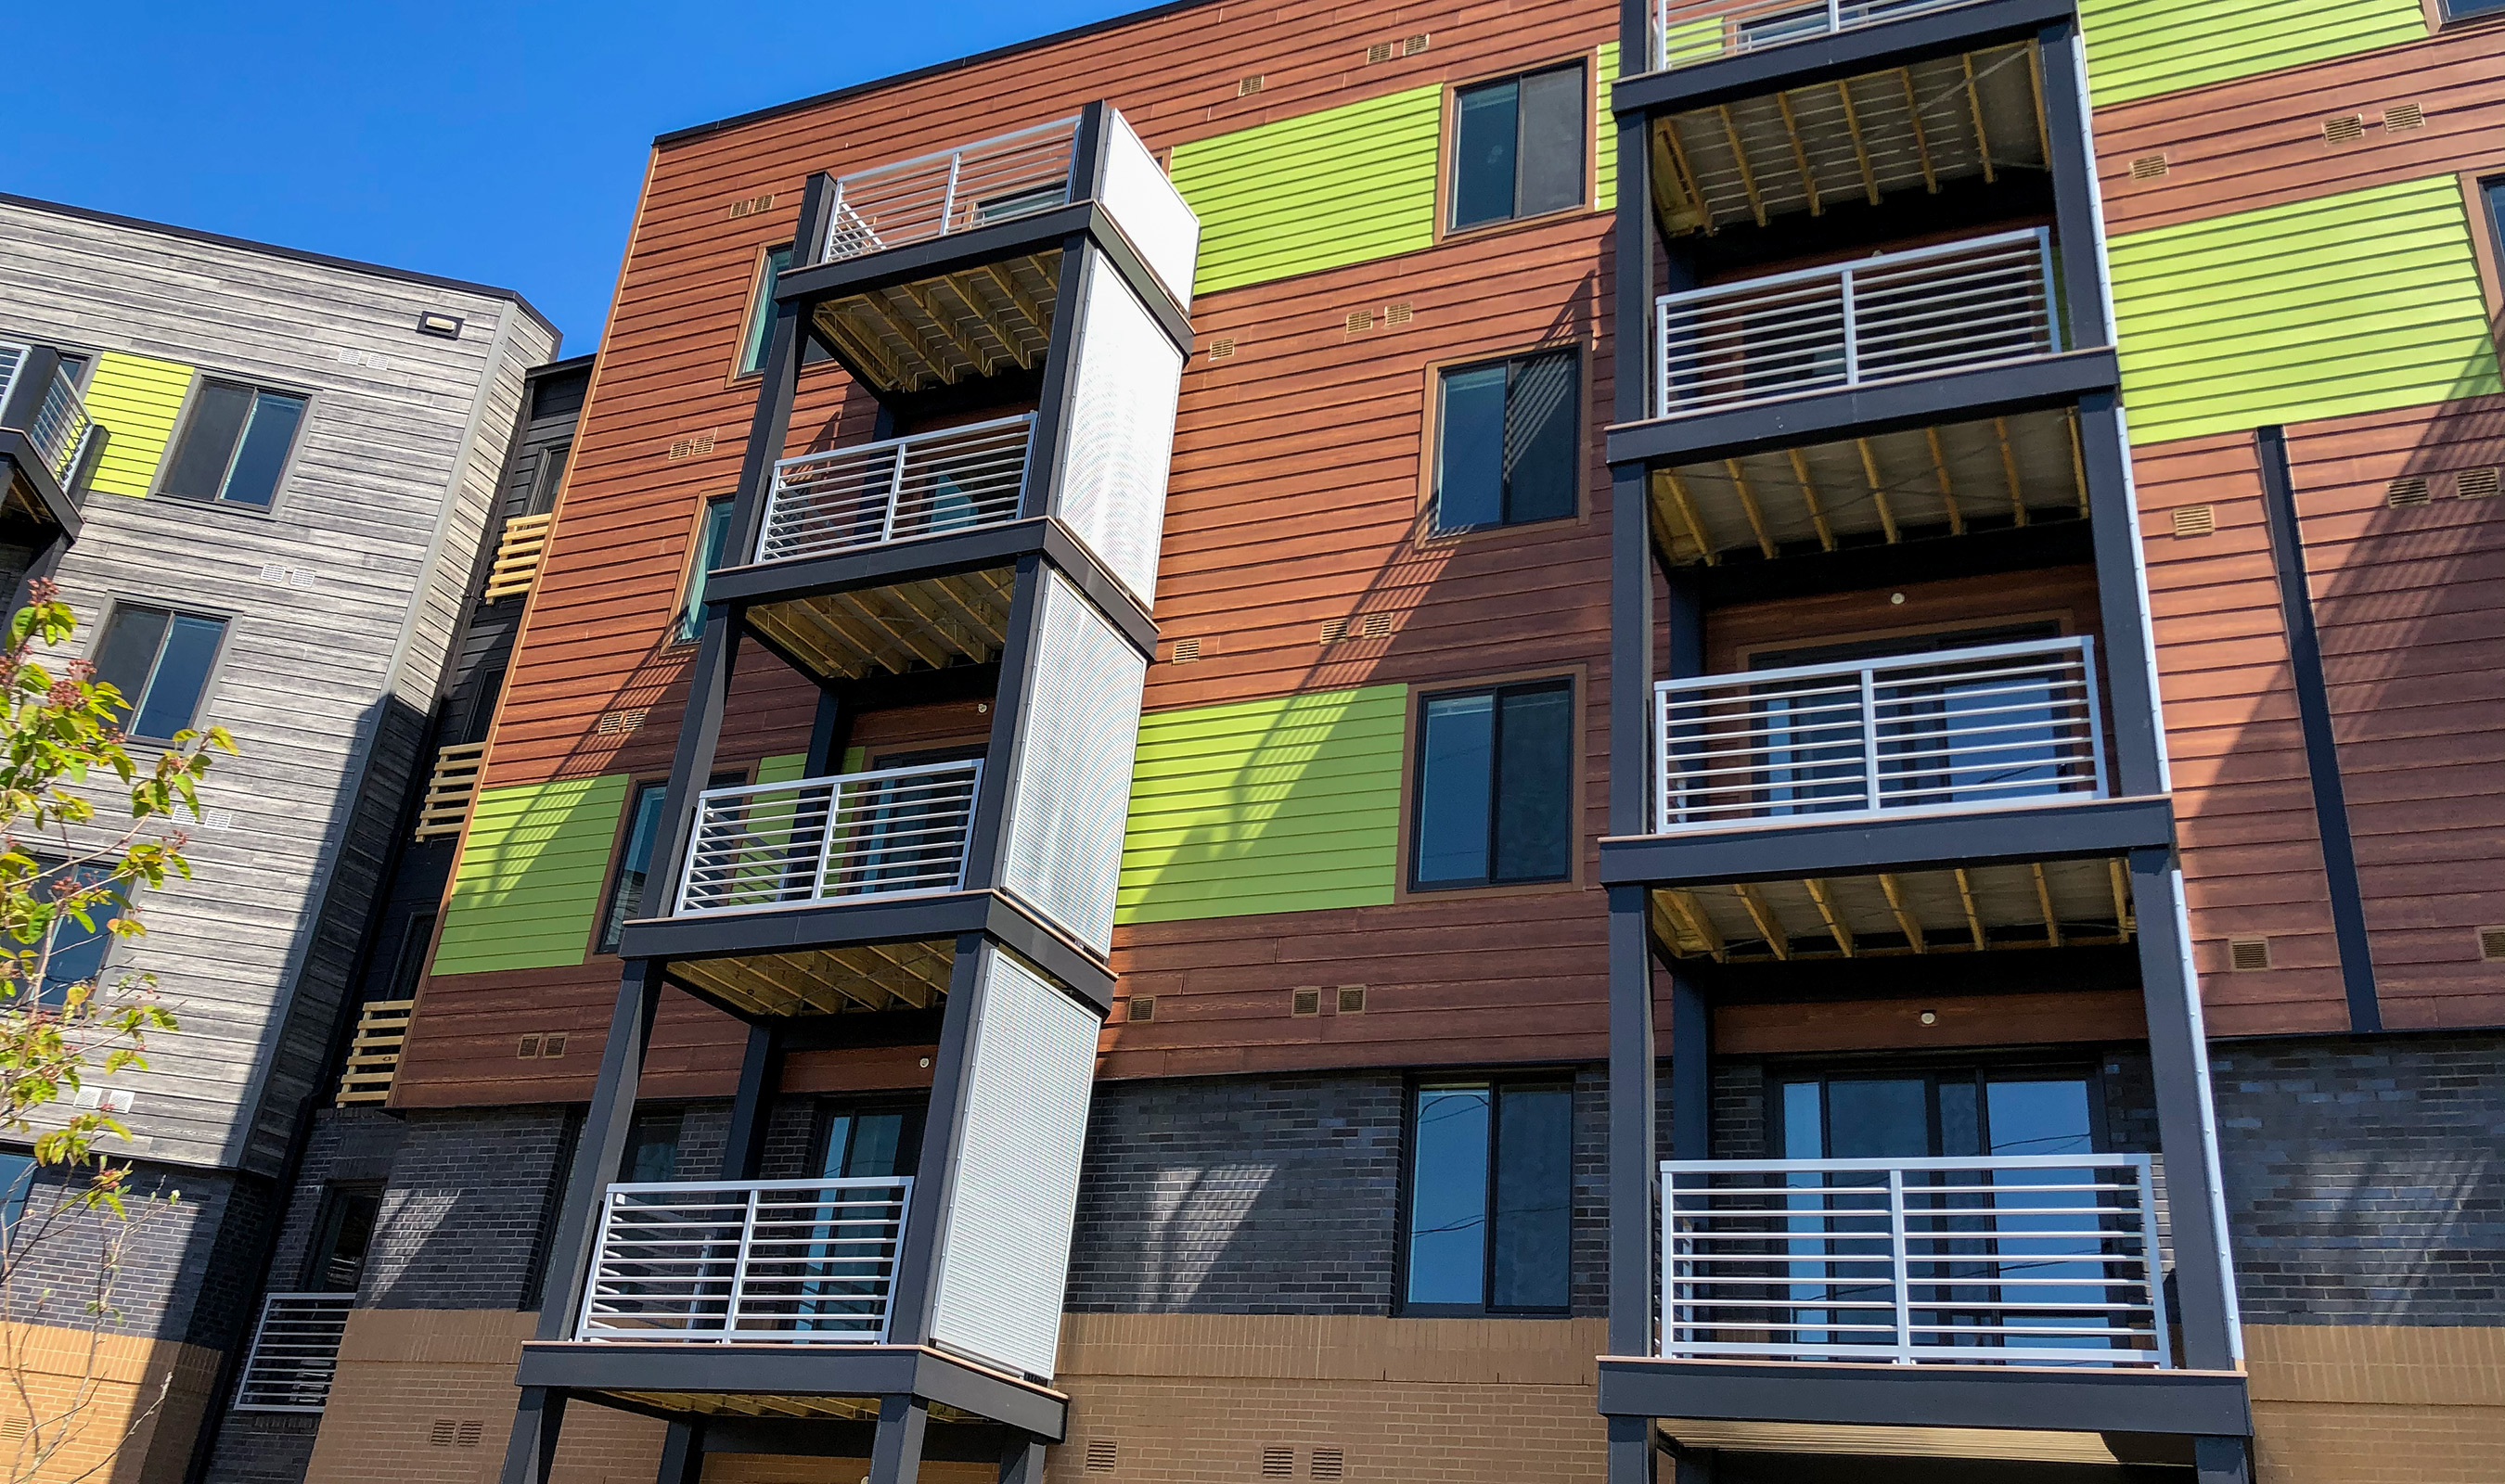 Banker Wire's LPZ-54 is used at The Apex apartments as sails, or balcony privacy screens.